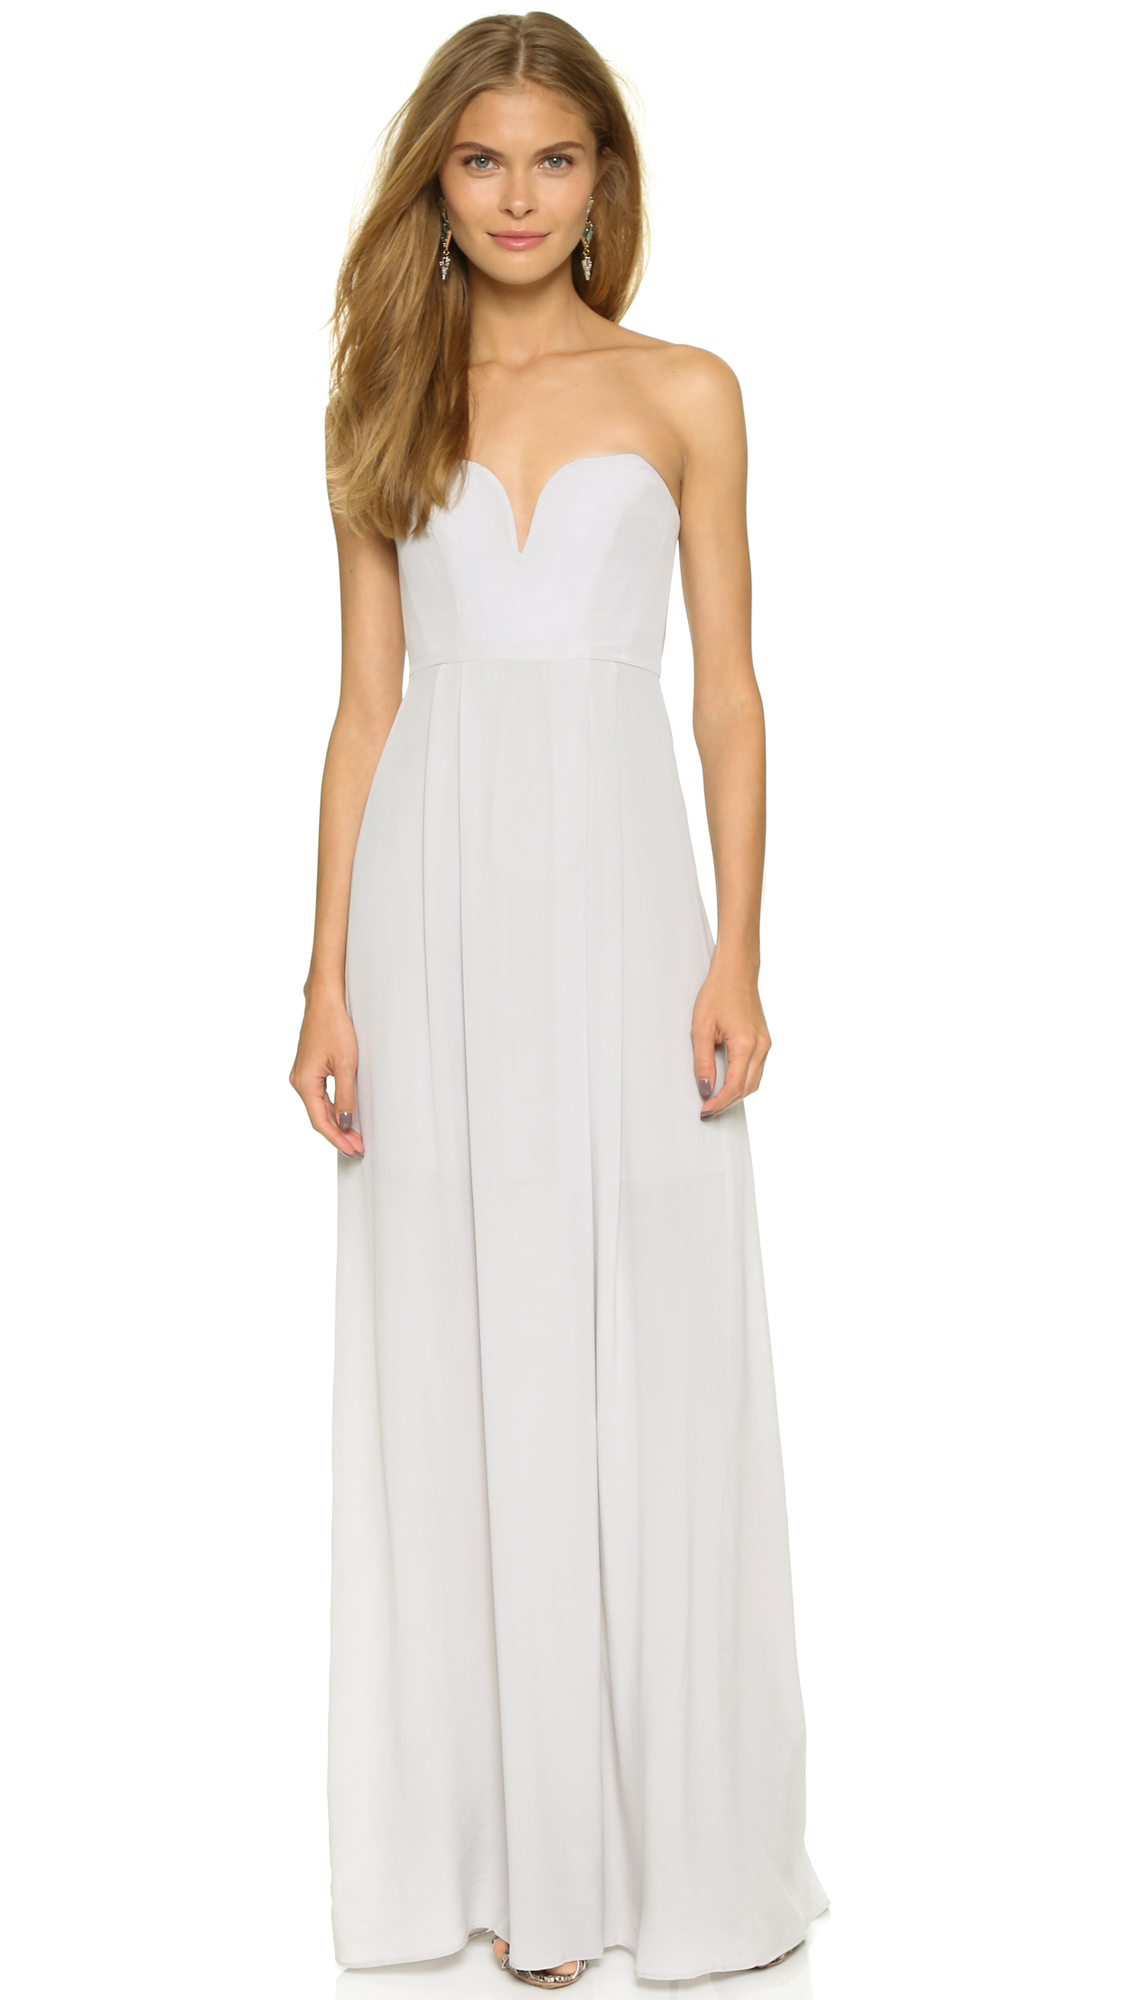 Zimmermann Strapless Maxi Dress - Mist